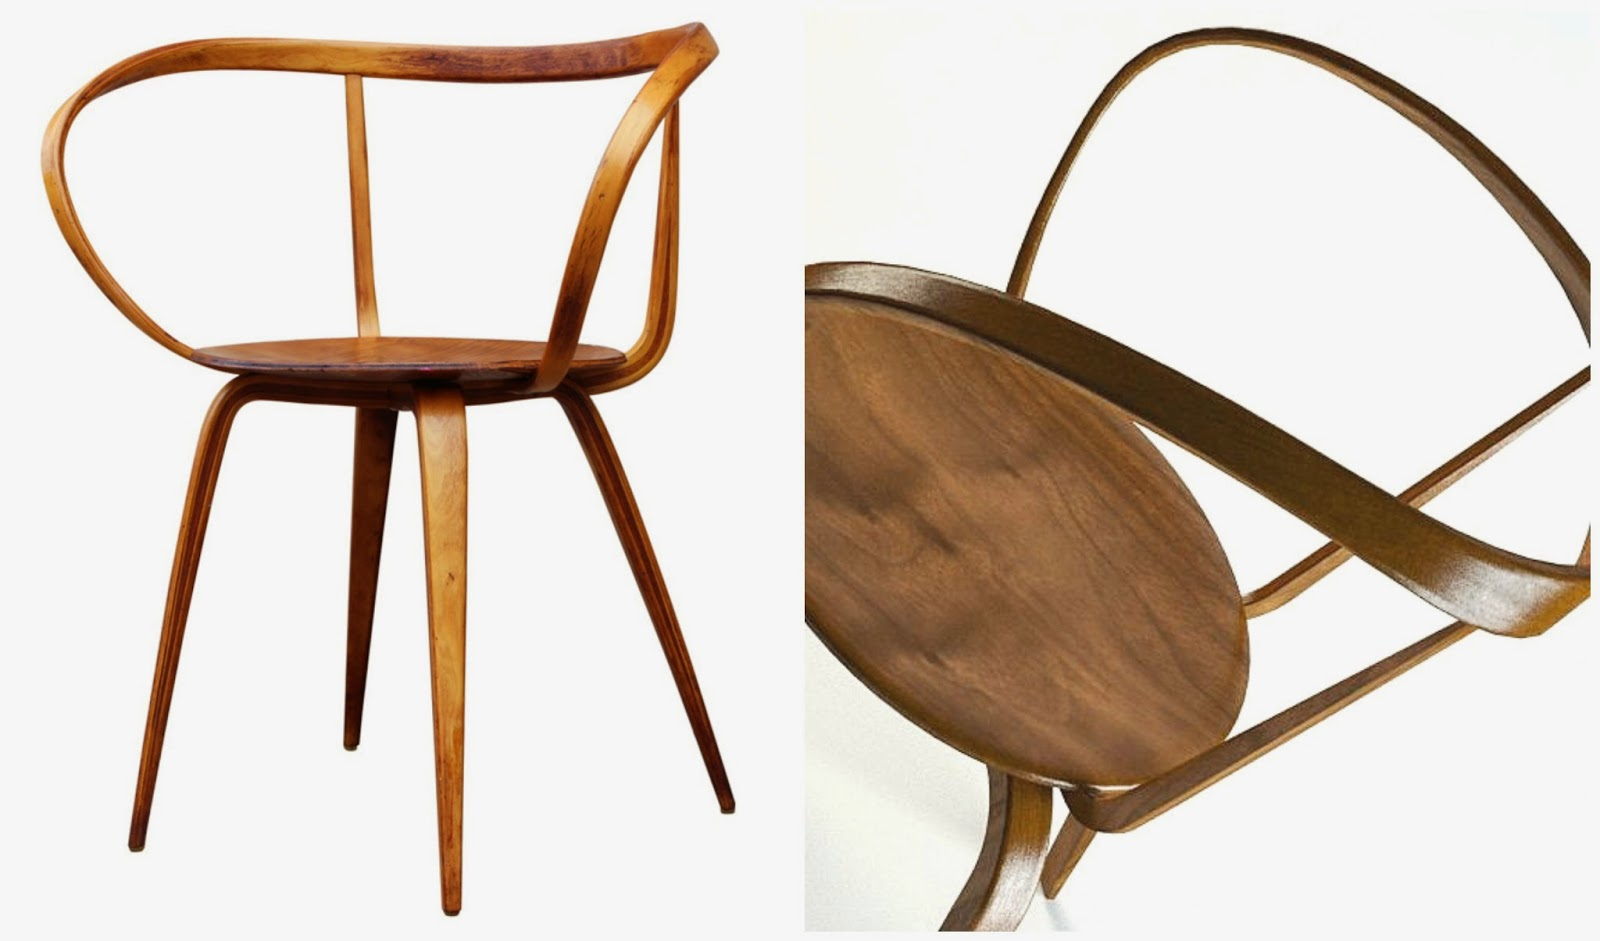 Pretzel Chair Rosa Beltran Design The Iconic Pretzel Chair And The